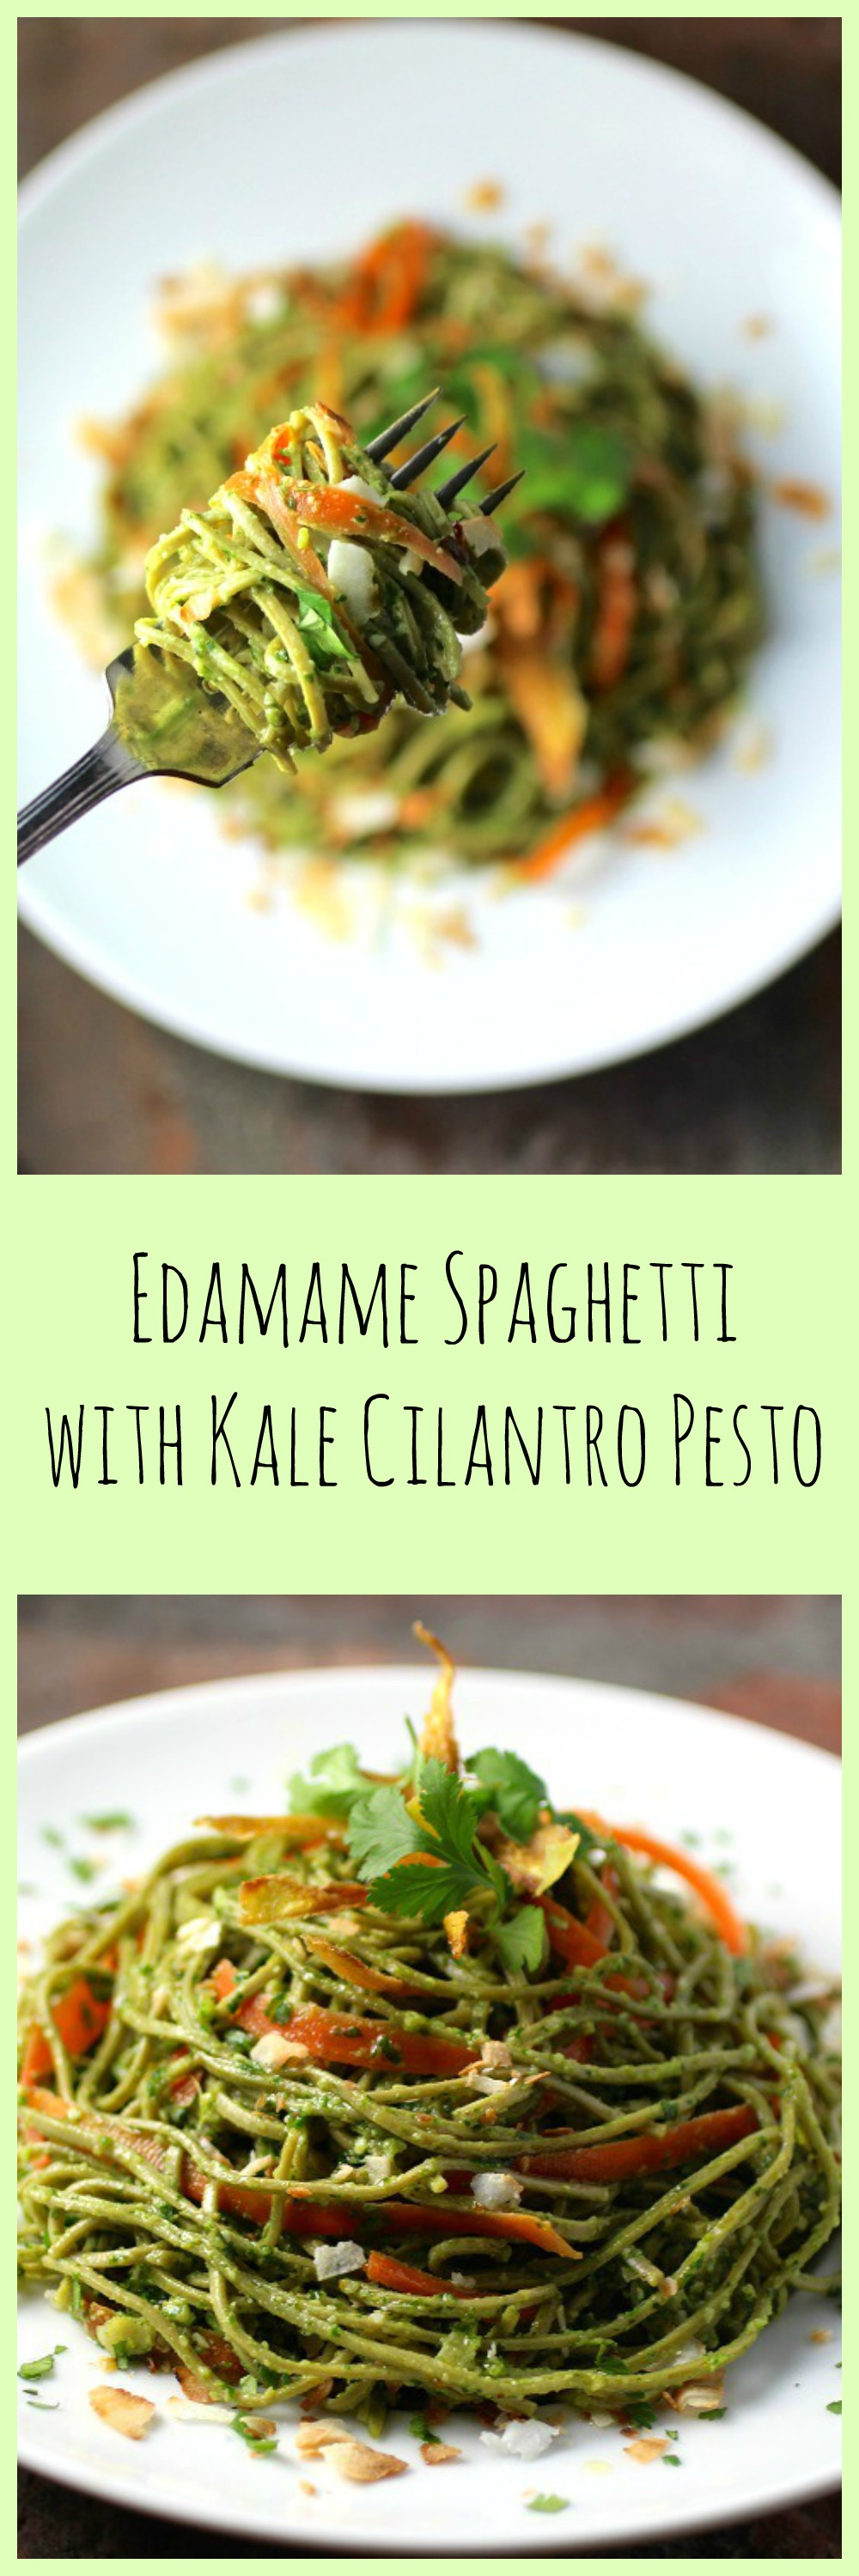 Edamame Spaghetti with Kale Cilantro Pesto to pin from ShockinglyDelicious.com